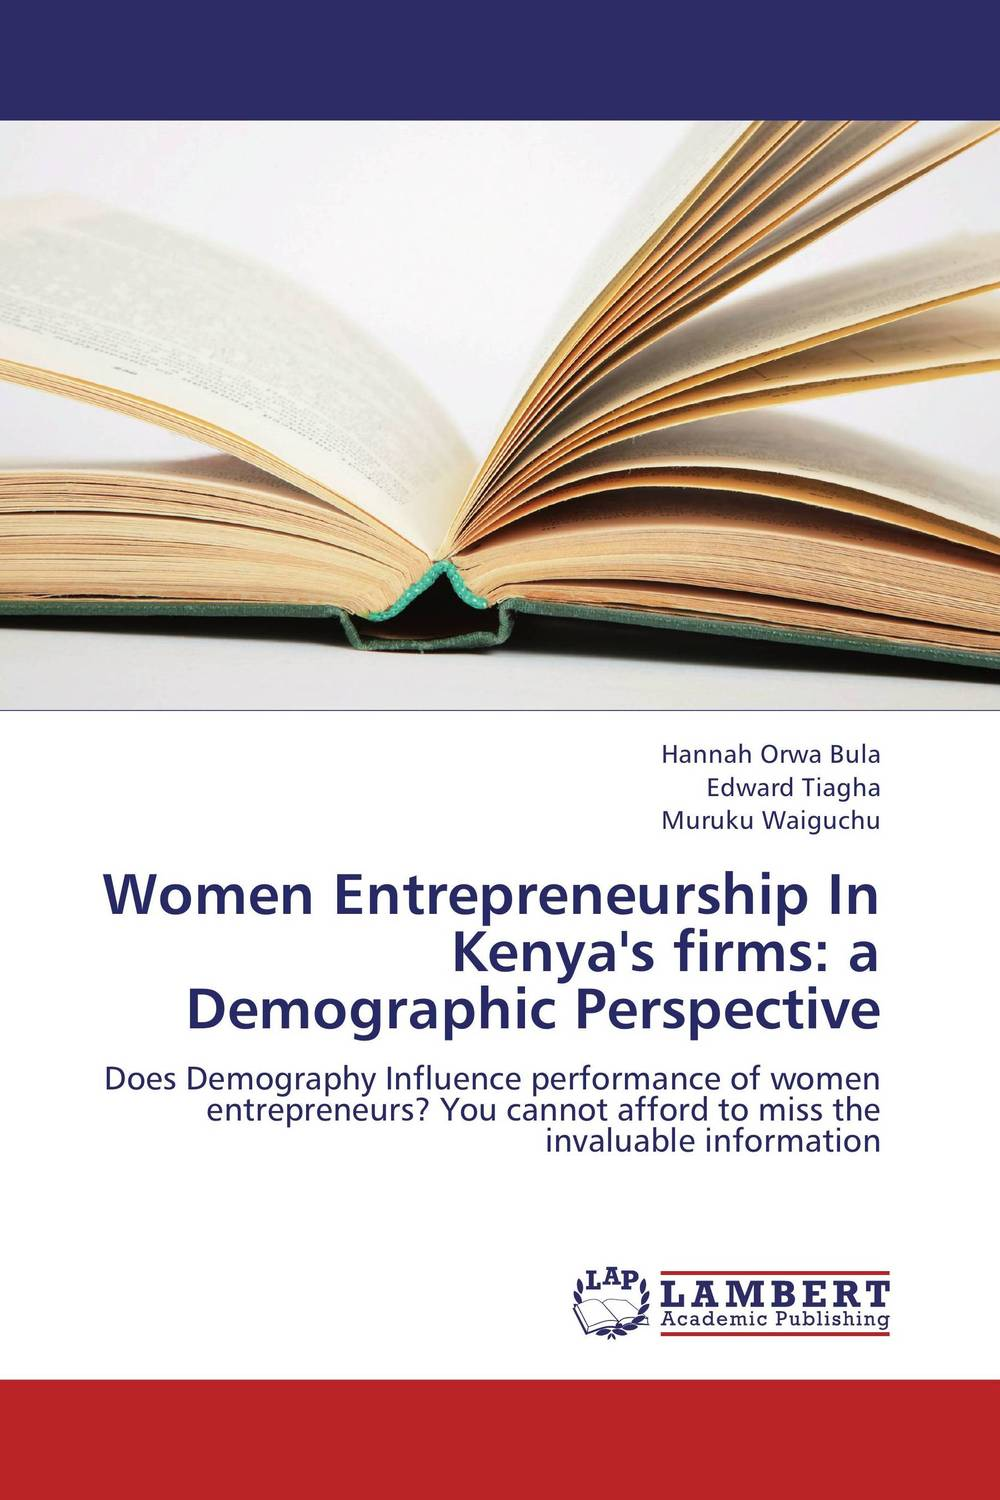 Women Entrepreneurship In Kenya's firms: a Demographic Perspective n giusti diffuse entrepreneurship and the very heart of made in italy for fashion and luxury goods